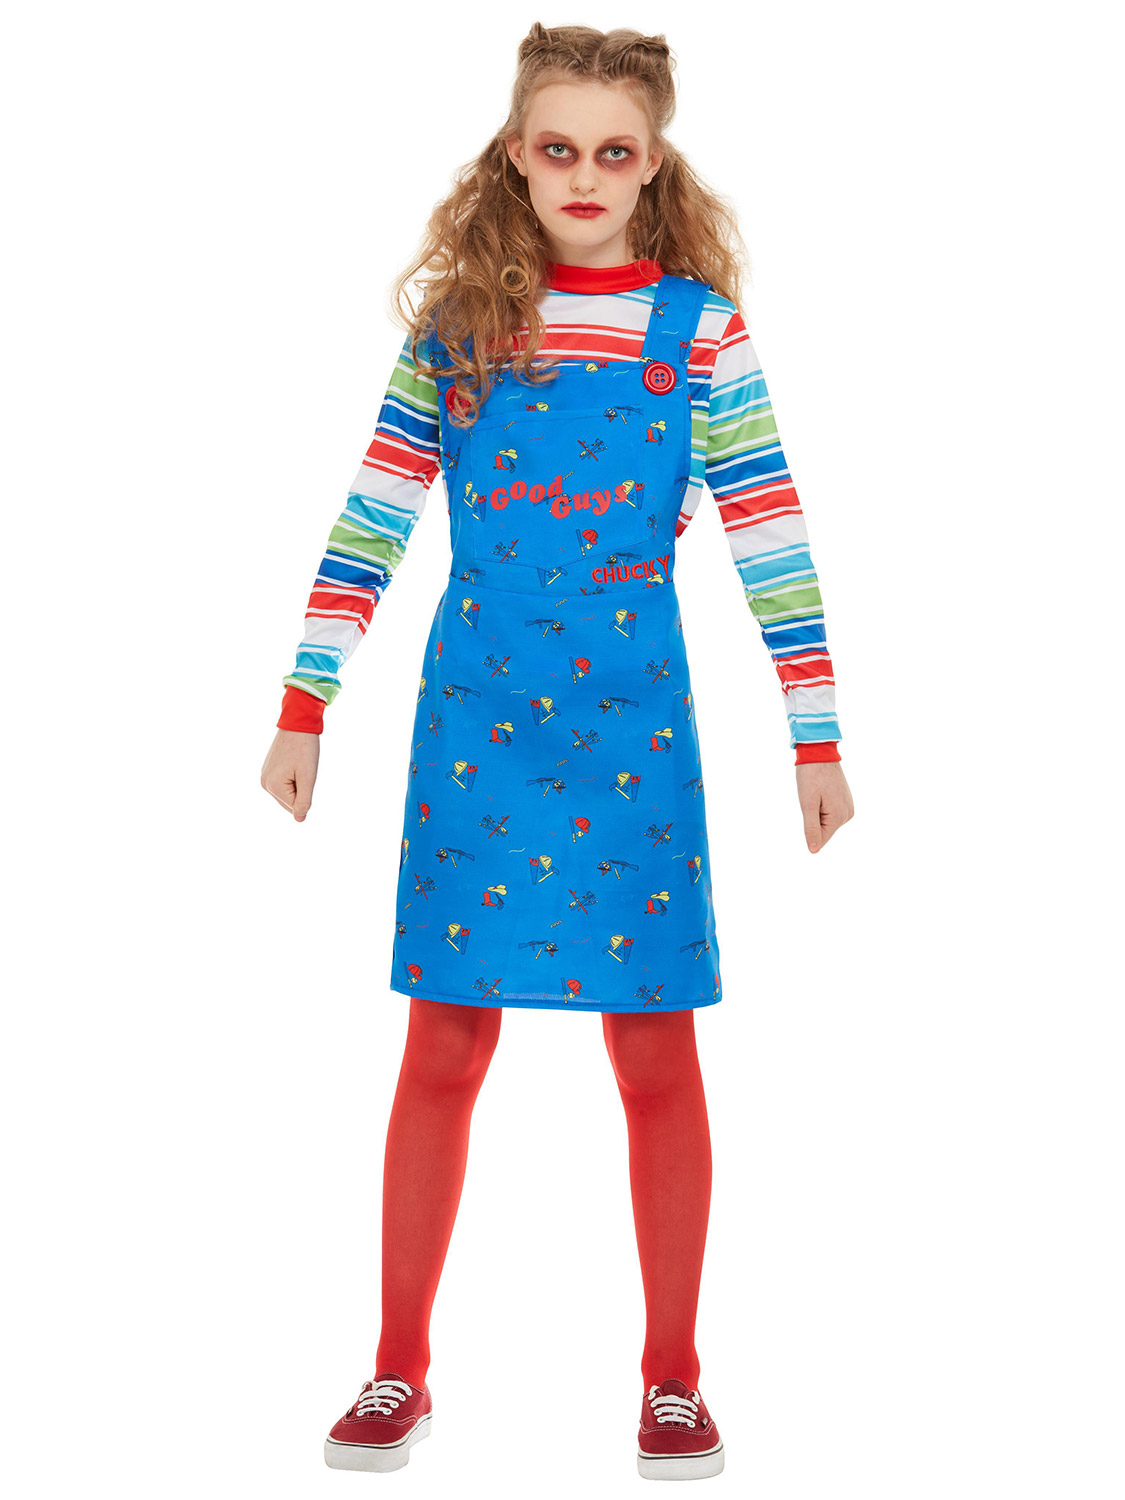 Girls Chucky Costume Childs Play Doll Halloween Child Fancy Dress